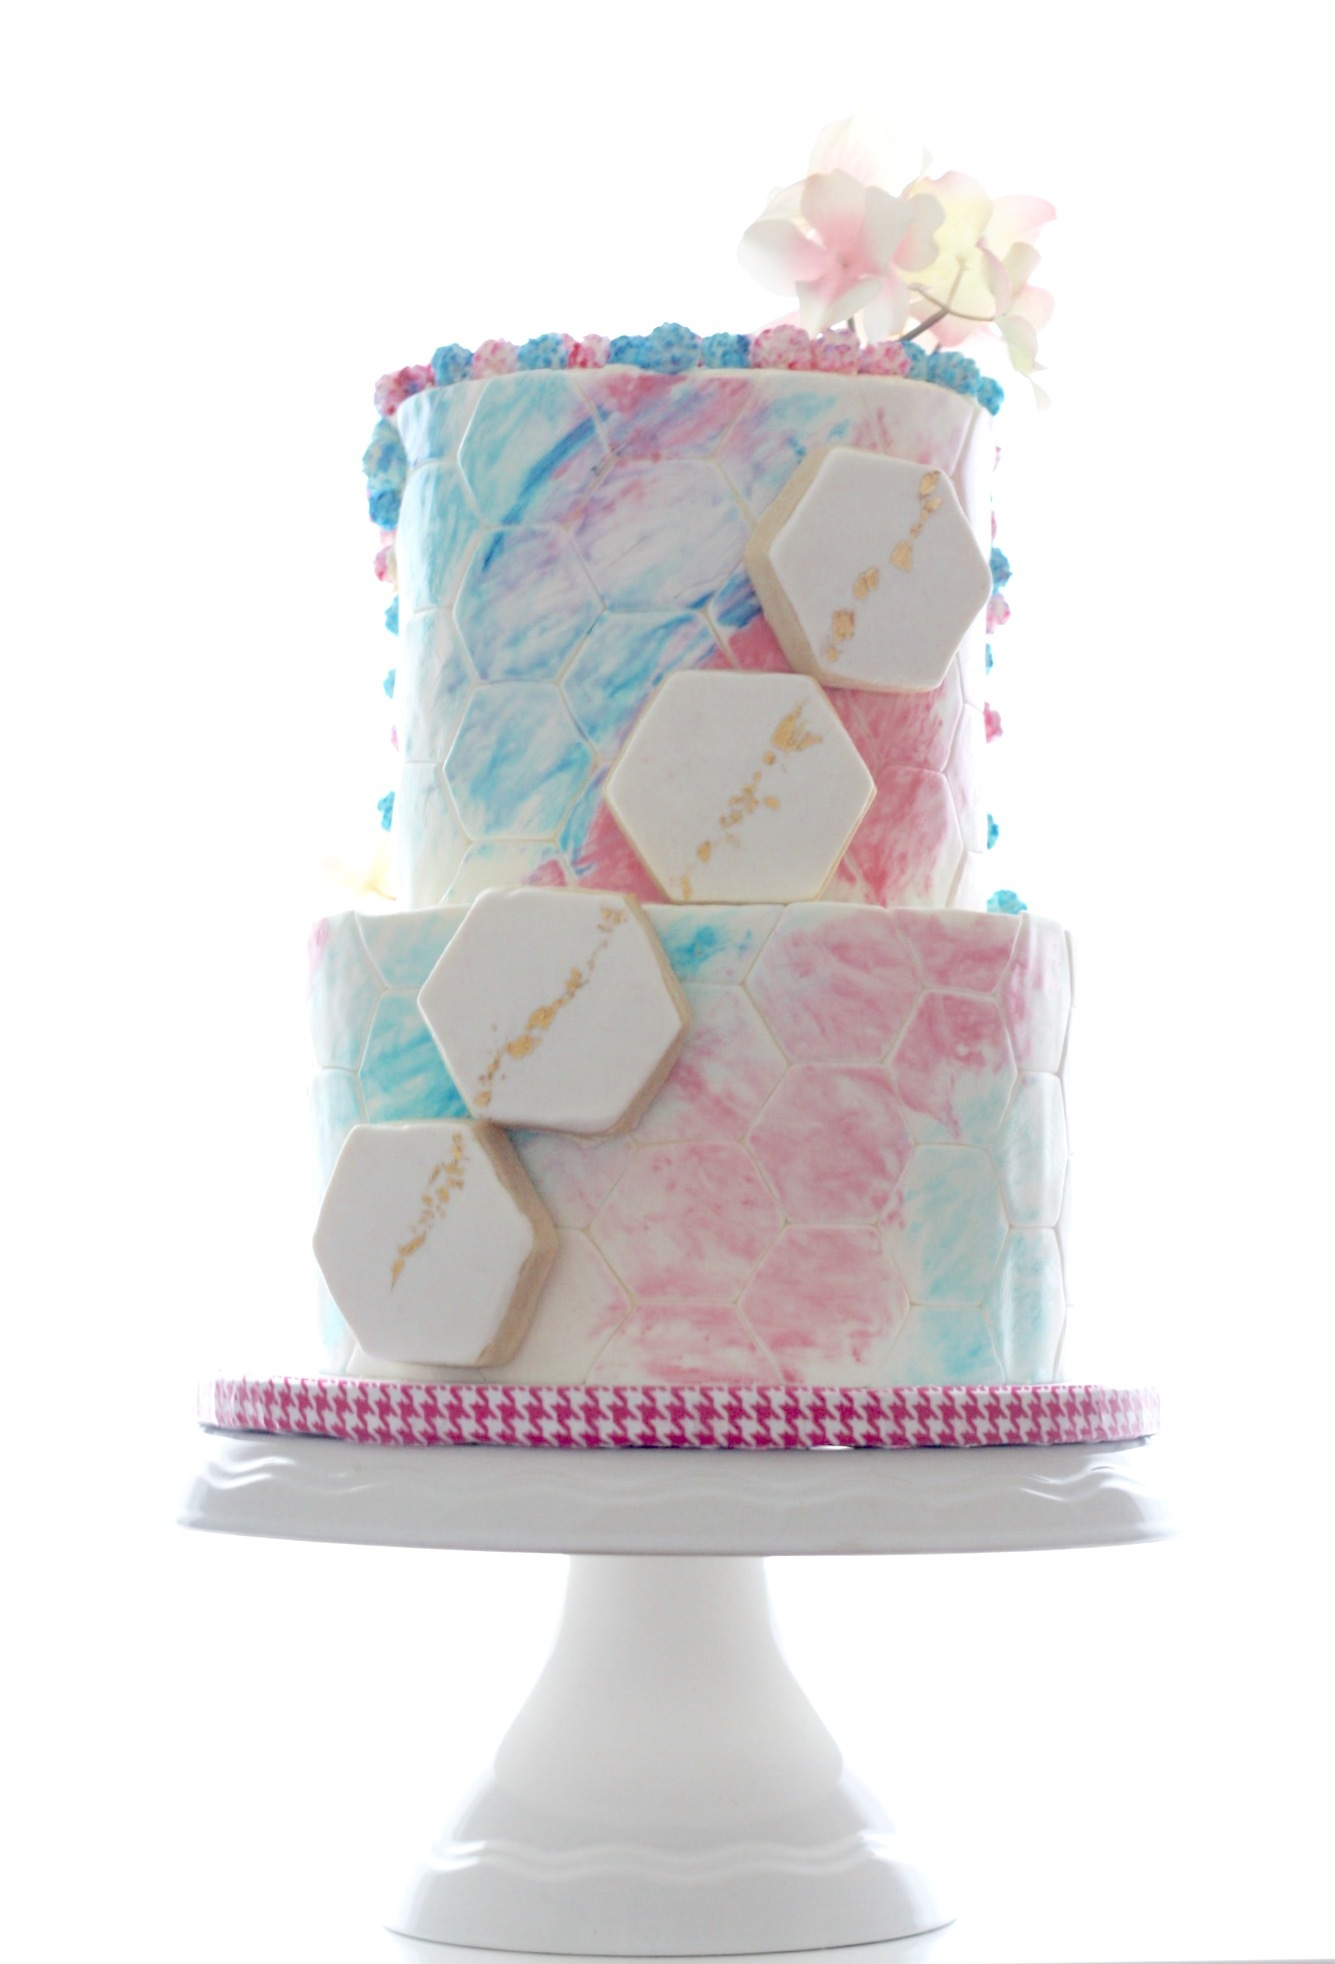 Pastel watercolor geometric fondant wedding cake